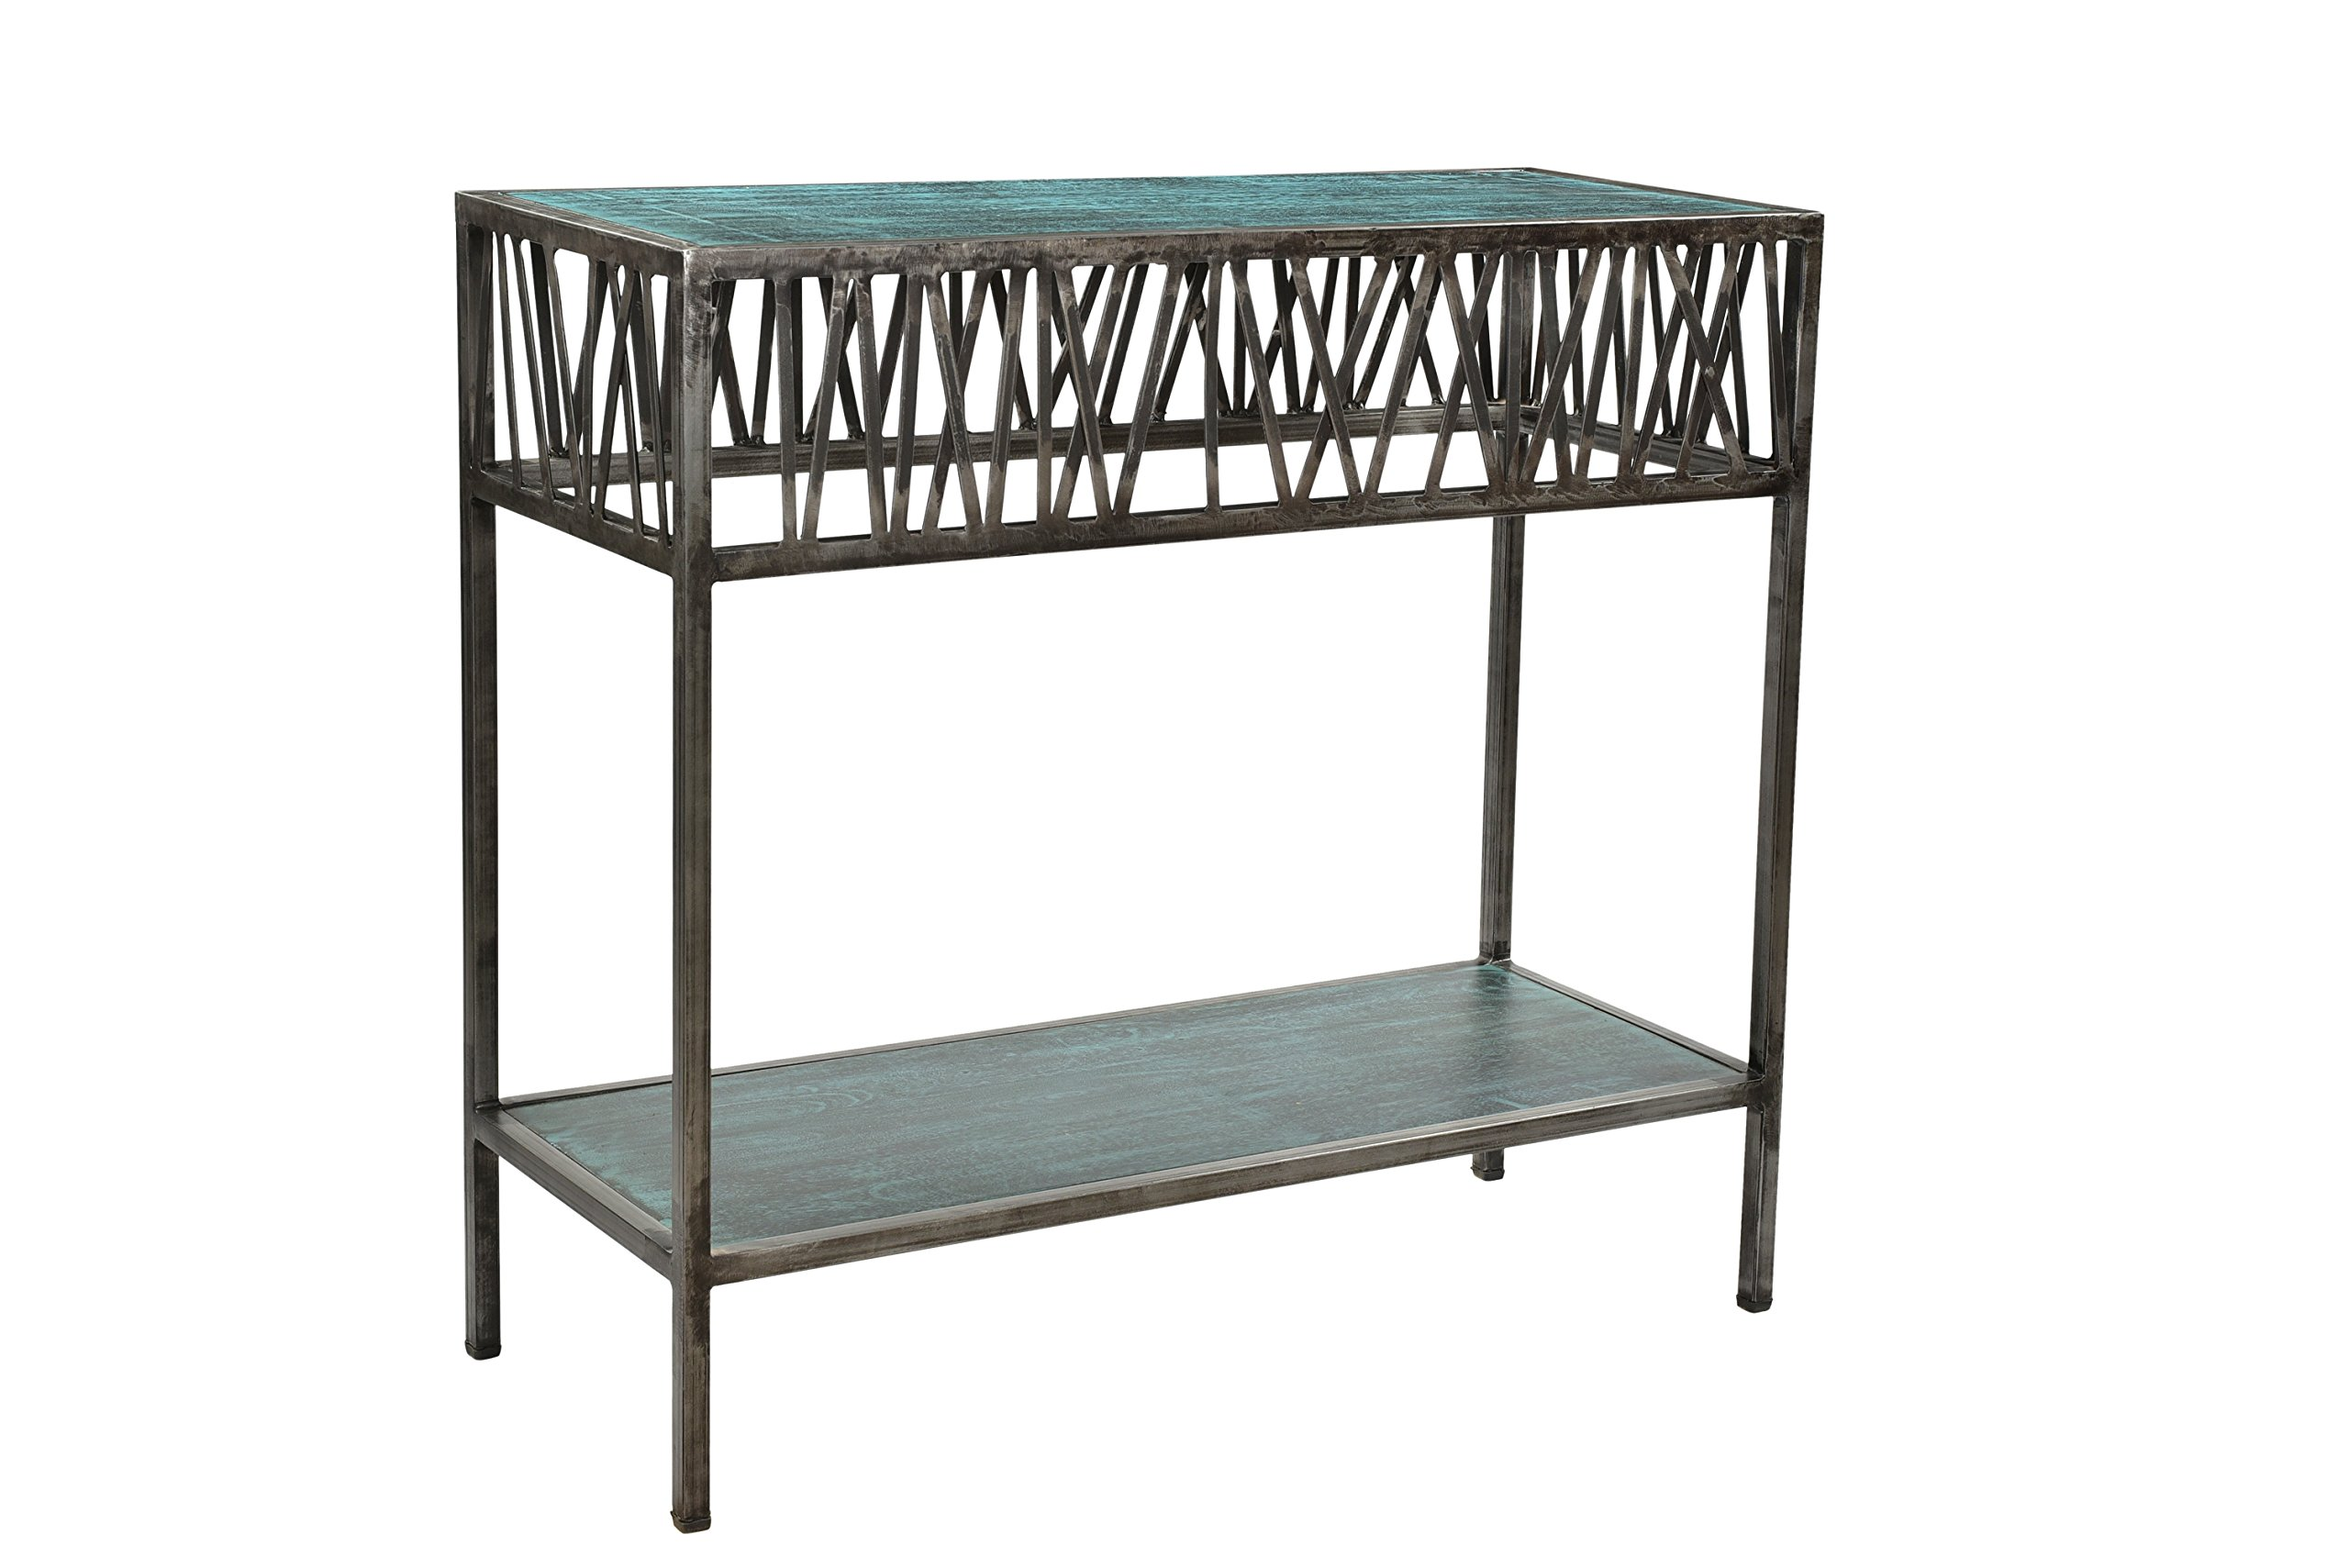 Designe Gallerie Garrard Rustic Iron Console Table with Wooden Top, Hallway or Entryway, Bottom Shelf for Storage, Natural Patina Finish, Silver - Design: Rustic style- an organic aesthetic and opened metal design and straight metal legs for support. Bring rustic intrigue to your living space. Transform your home decor with this console table. Functional: useful as a sofa console and hallway or entryway console, transmit offers versatility and makes a bold statement. Storage space: Made of wood and metal, it features storage space with bottom shelf, which can well accommodate your various kinds of accessories or stuffs, such as your Notebooks, magazines, books or other things. - living-room-furniture, living-room, console-tables - 81H 3fTWvZL -